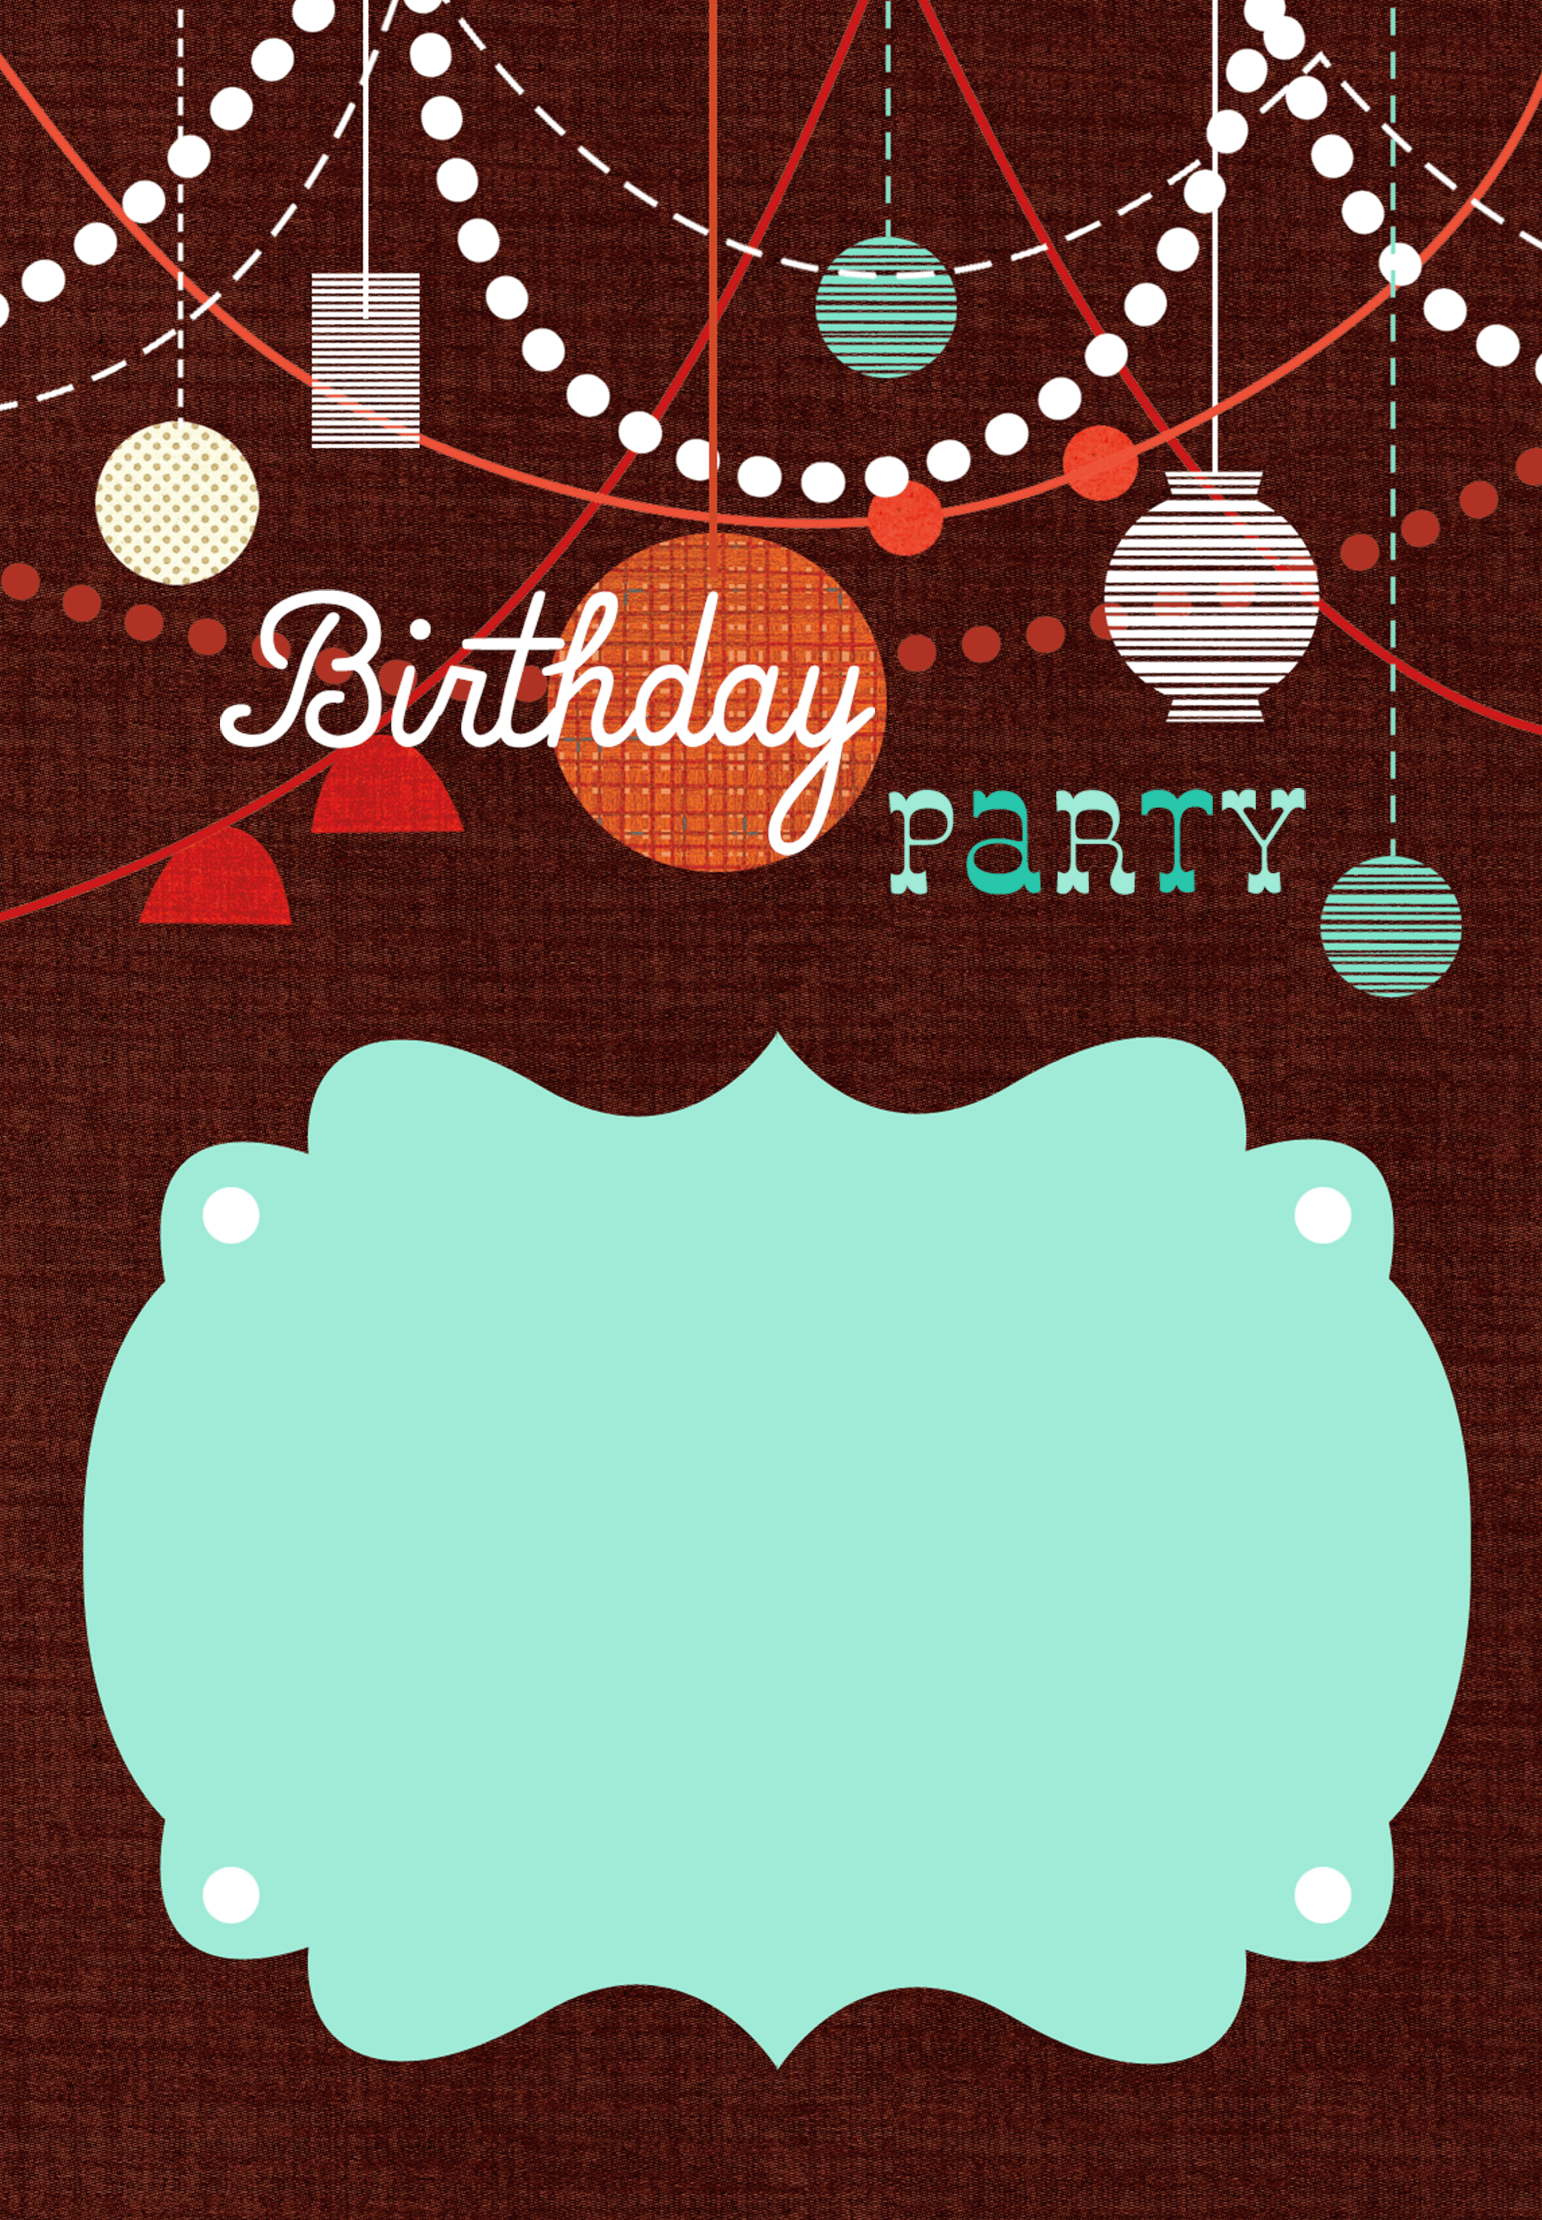 Birthday Decorations Free Birthday Invitation Template Greetings Isl Birthday Invitation Card Template Party Invite Template Printable Birthday Invitations